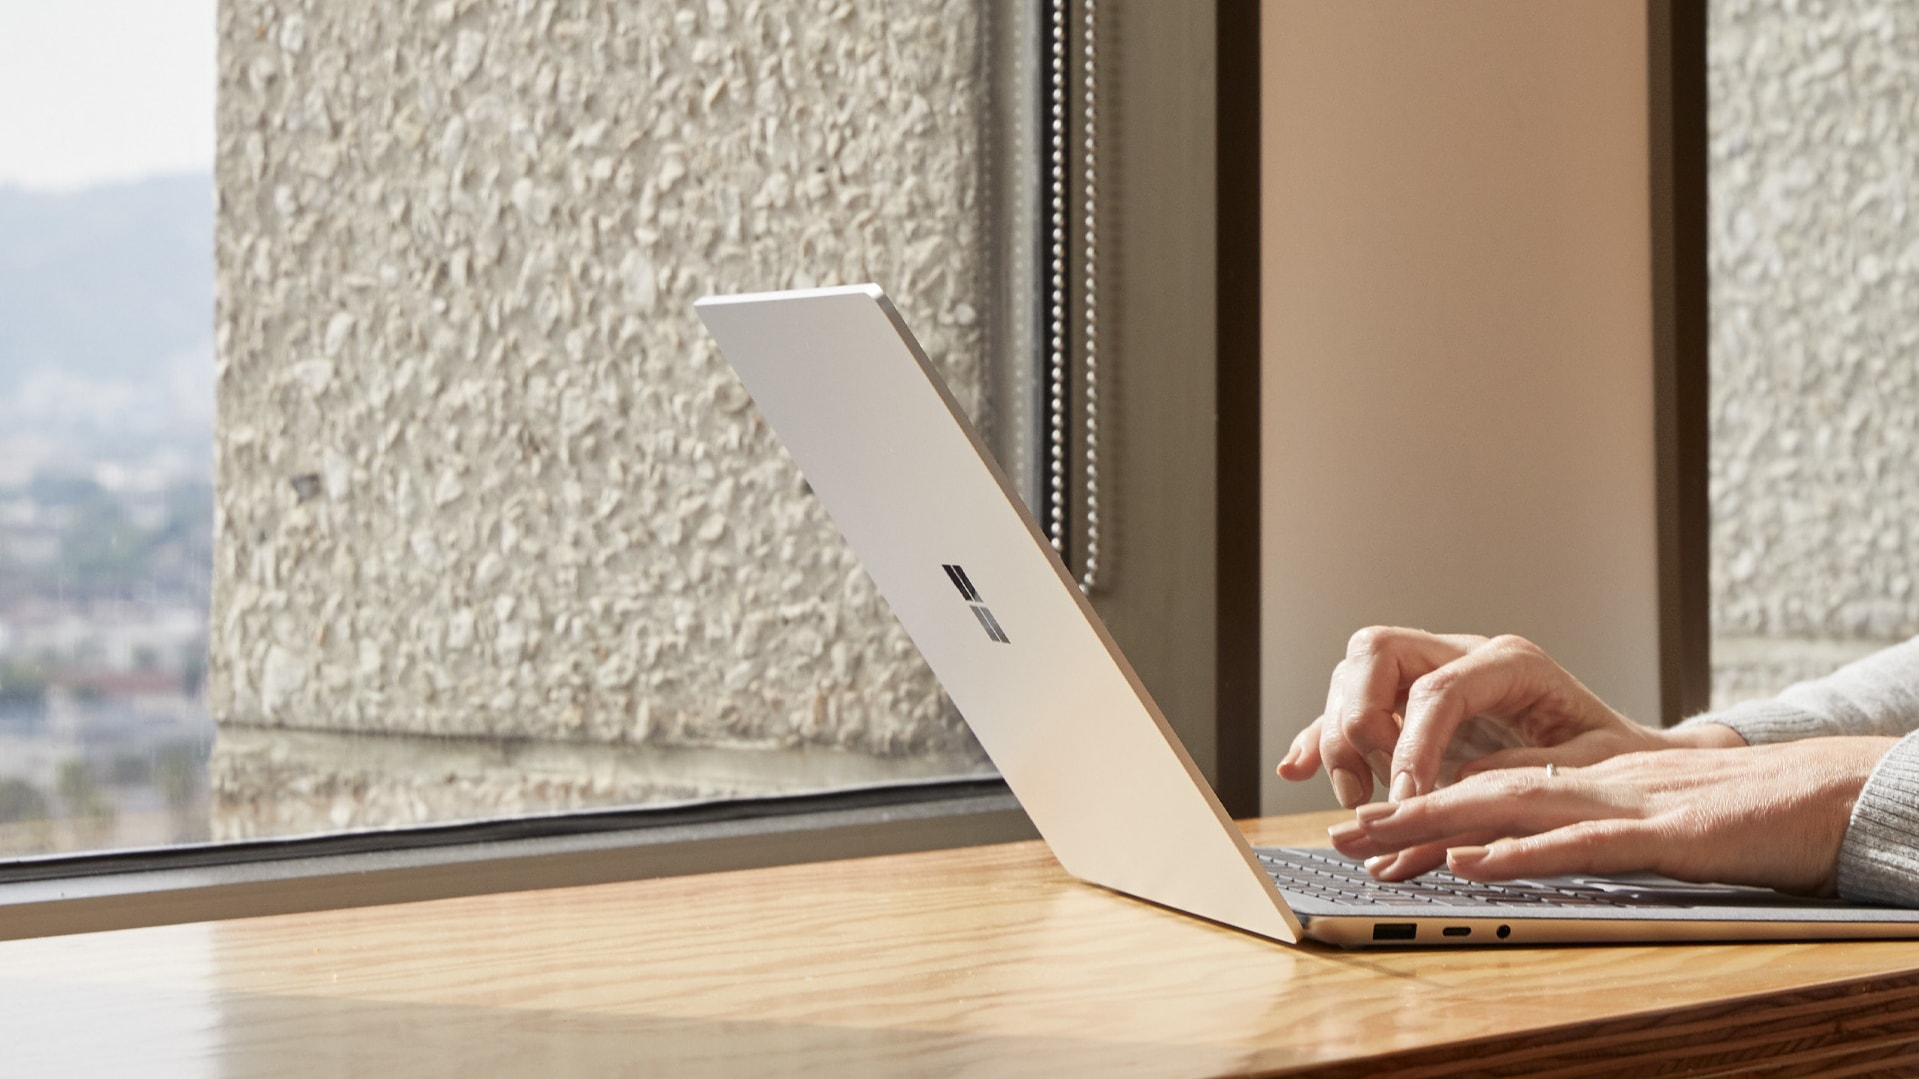 A person works on their Surface Laptop 3 next to a window